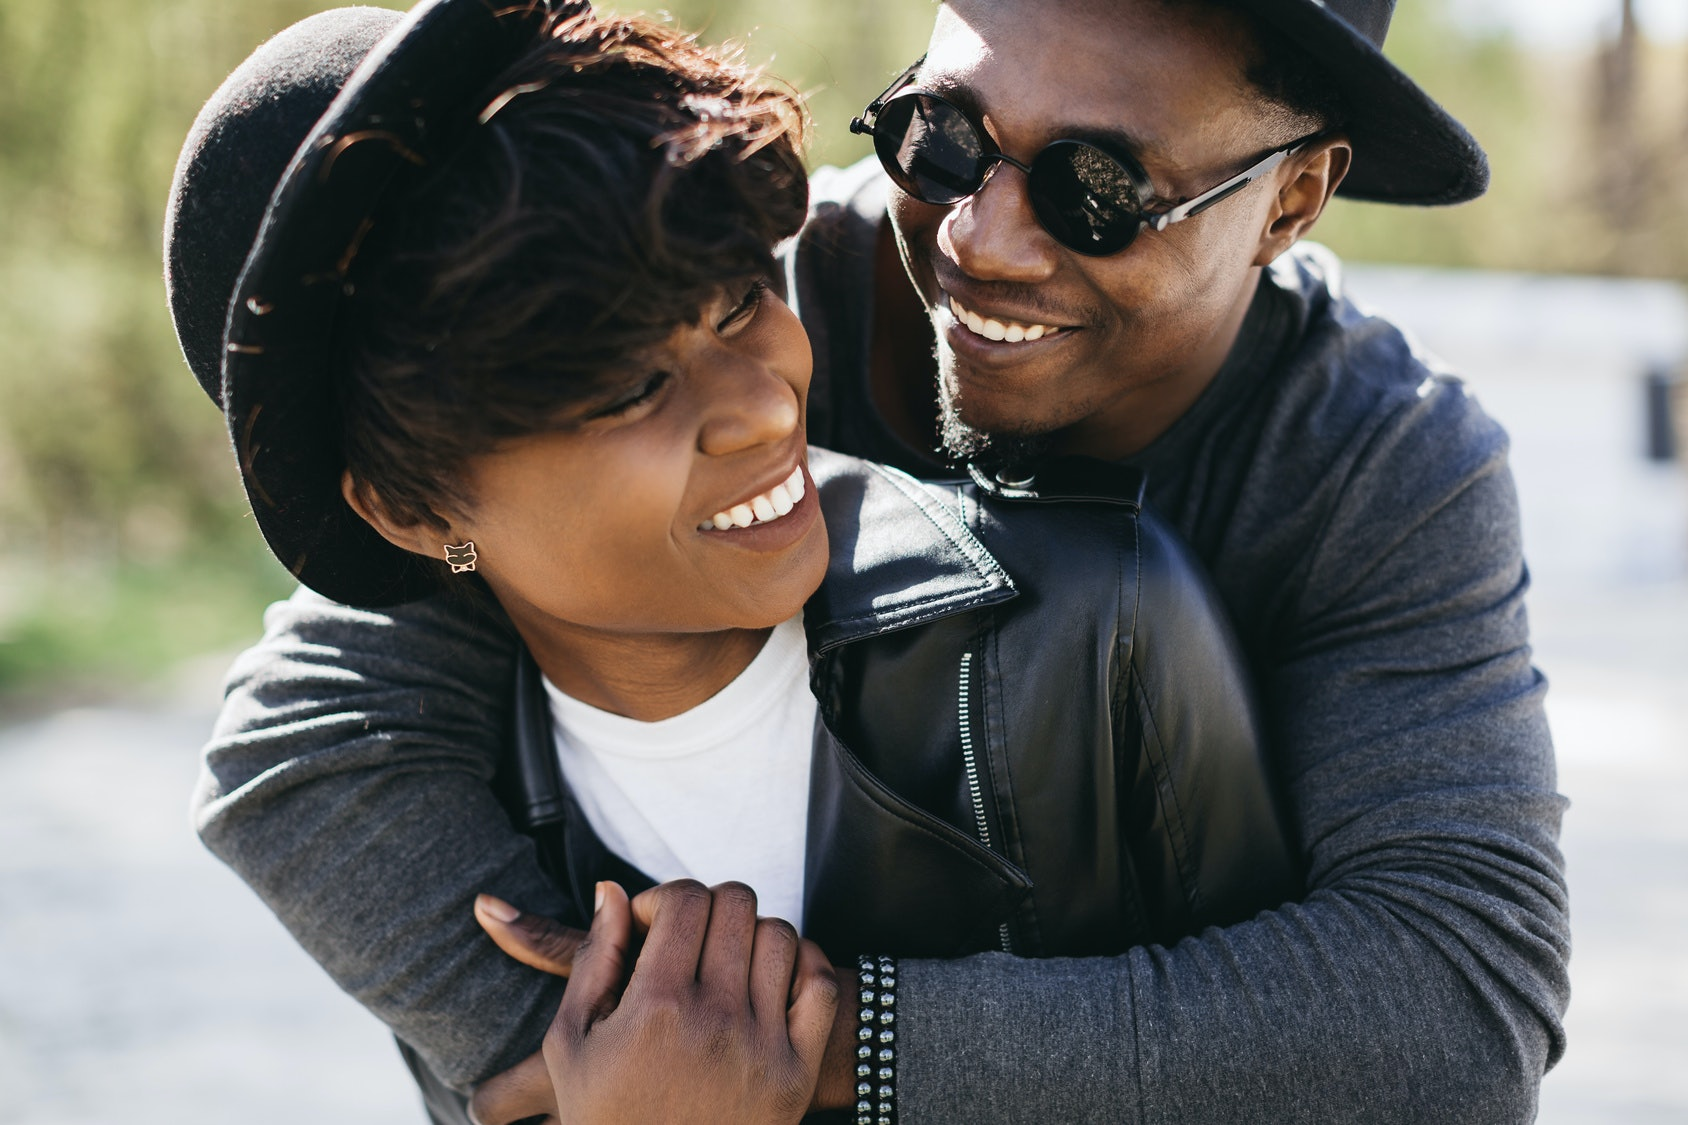 Turn your hookup into a relationship